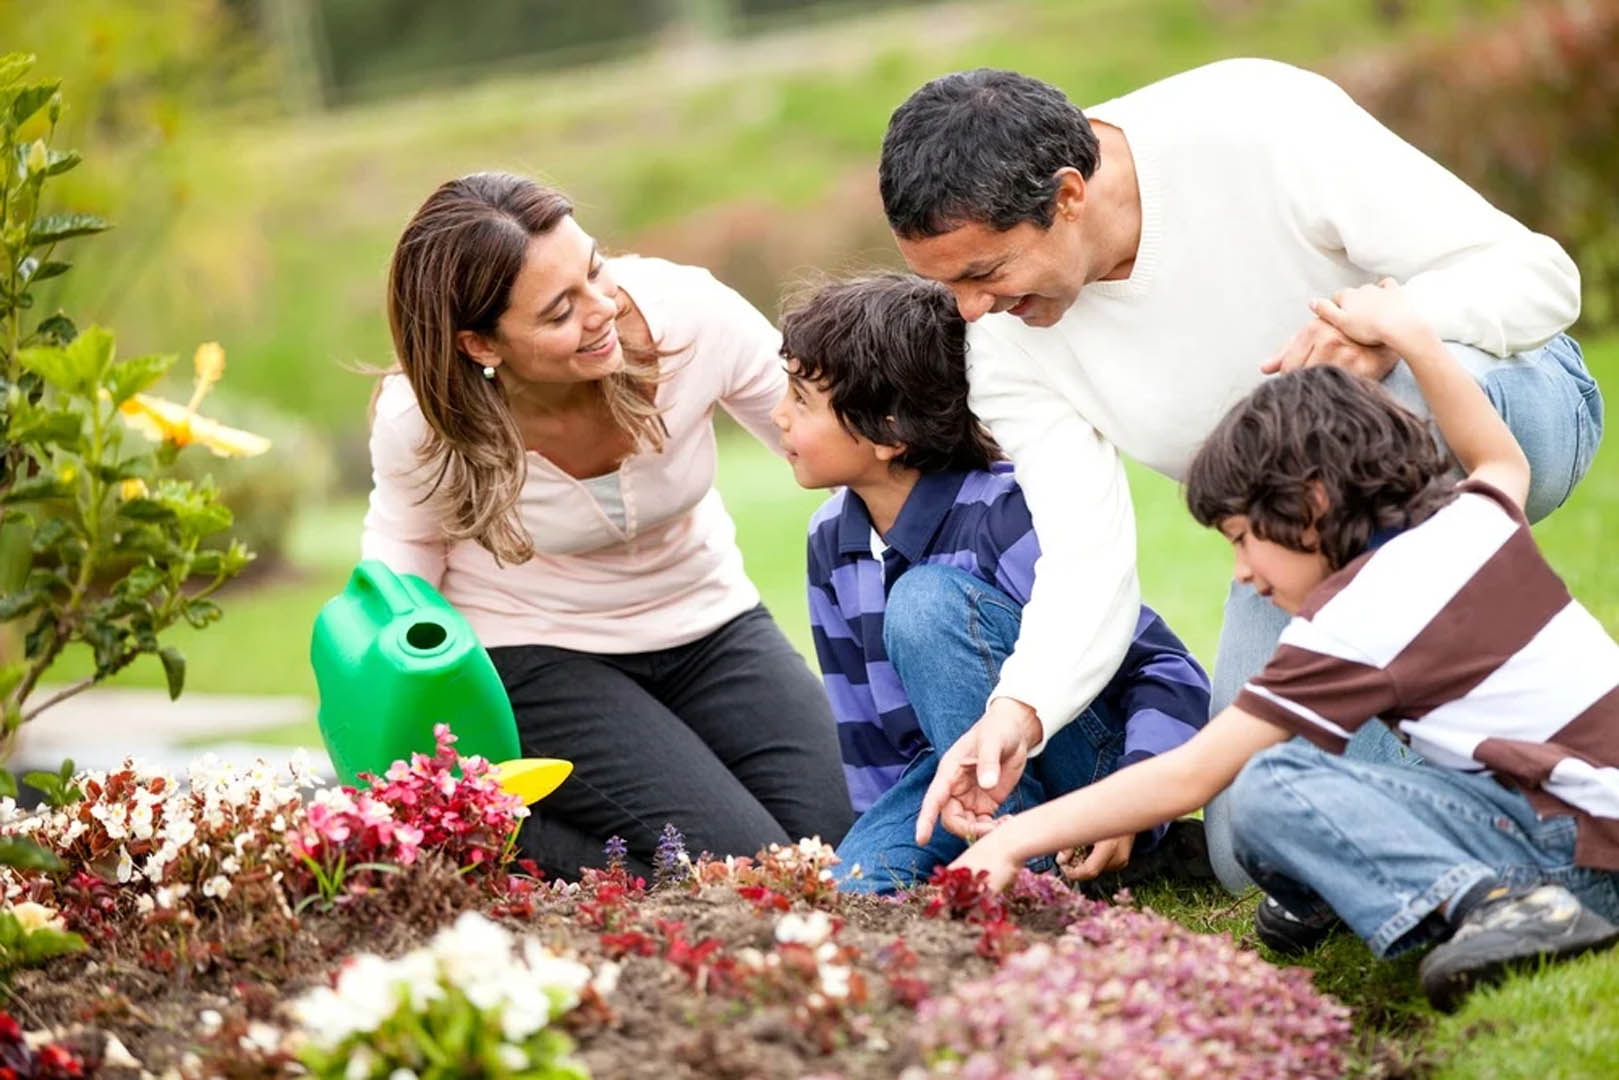 Happy-family-gardening-together-and-taking-care-of-nature